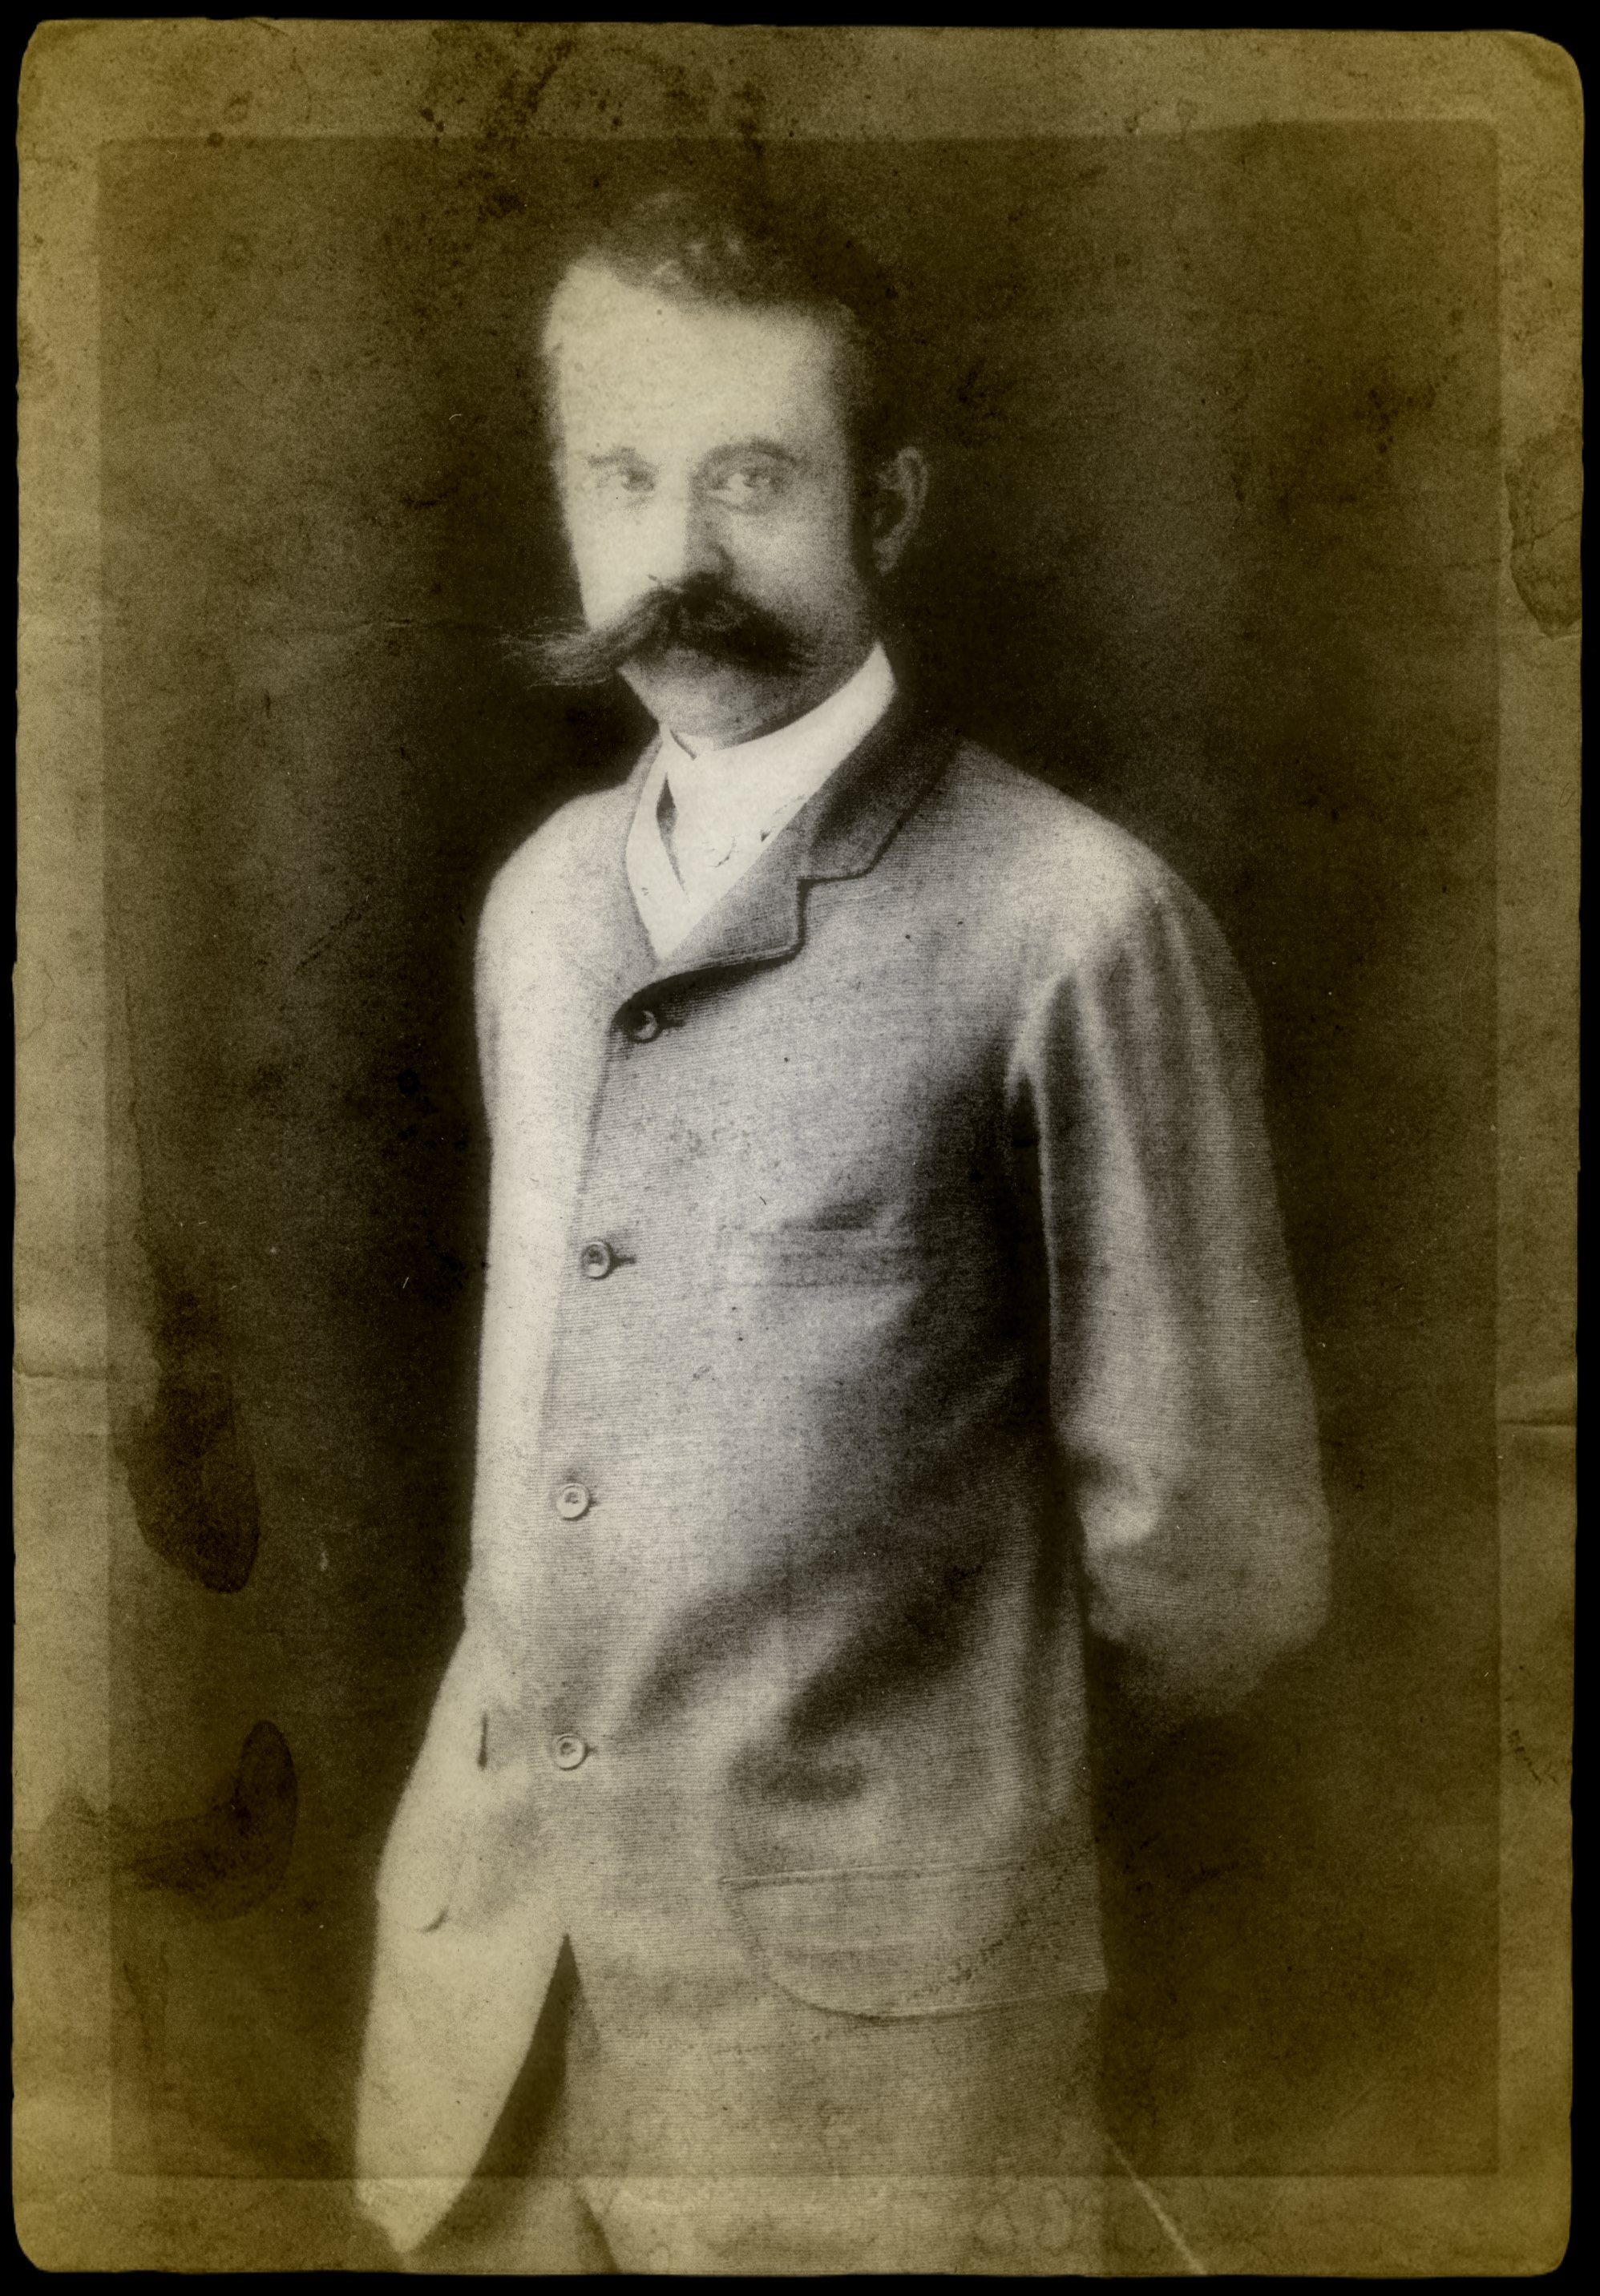 Famed architect Stanford White